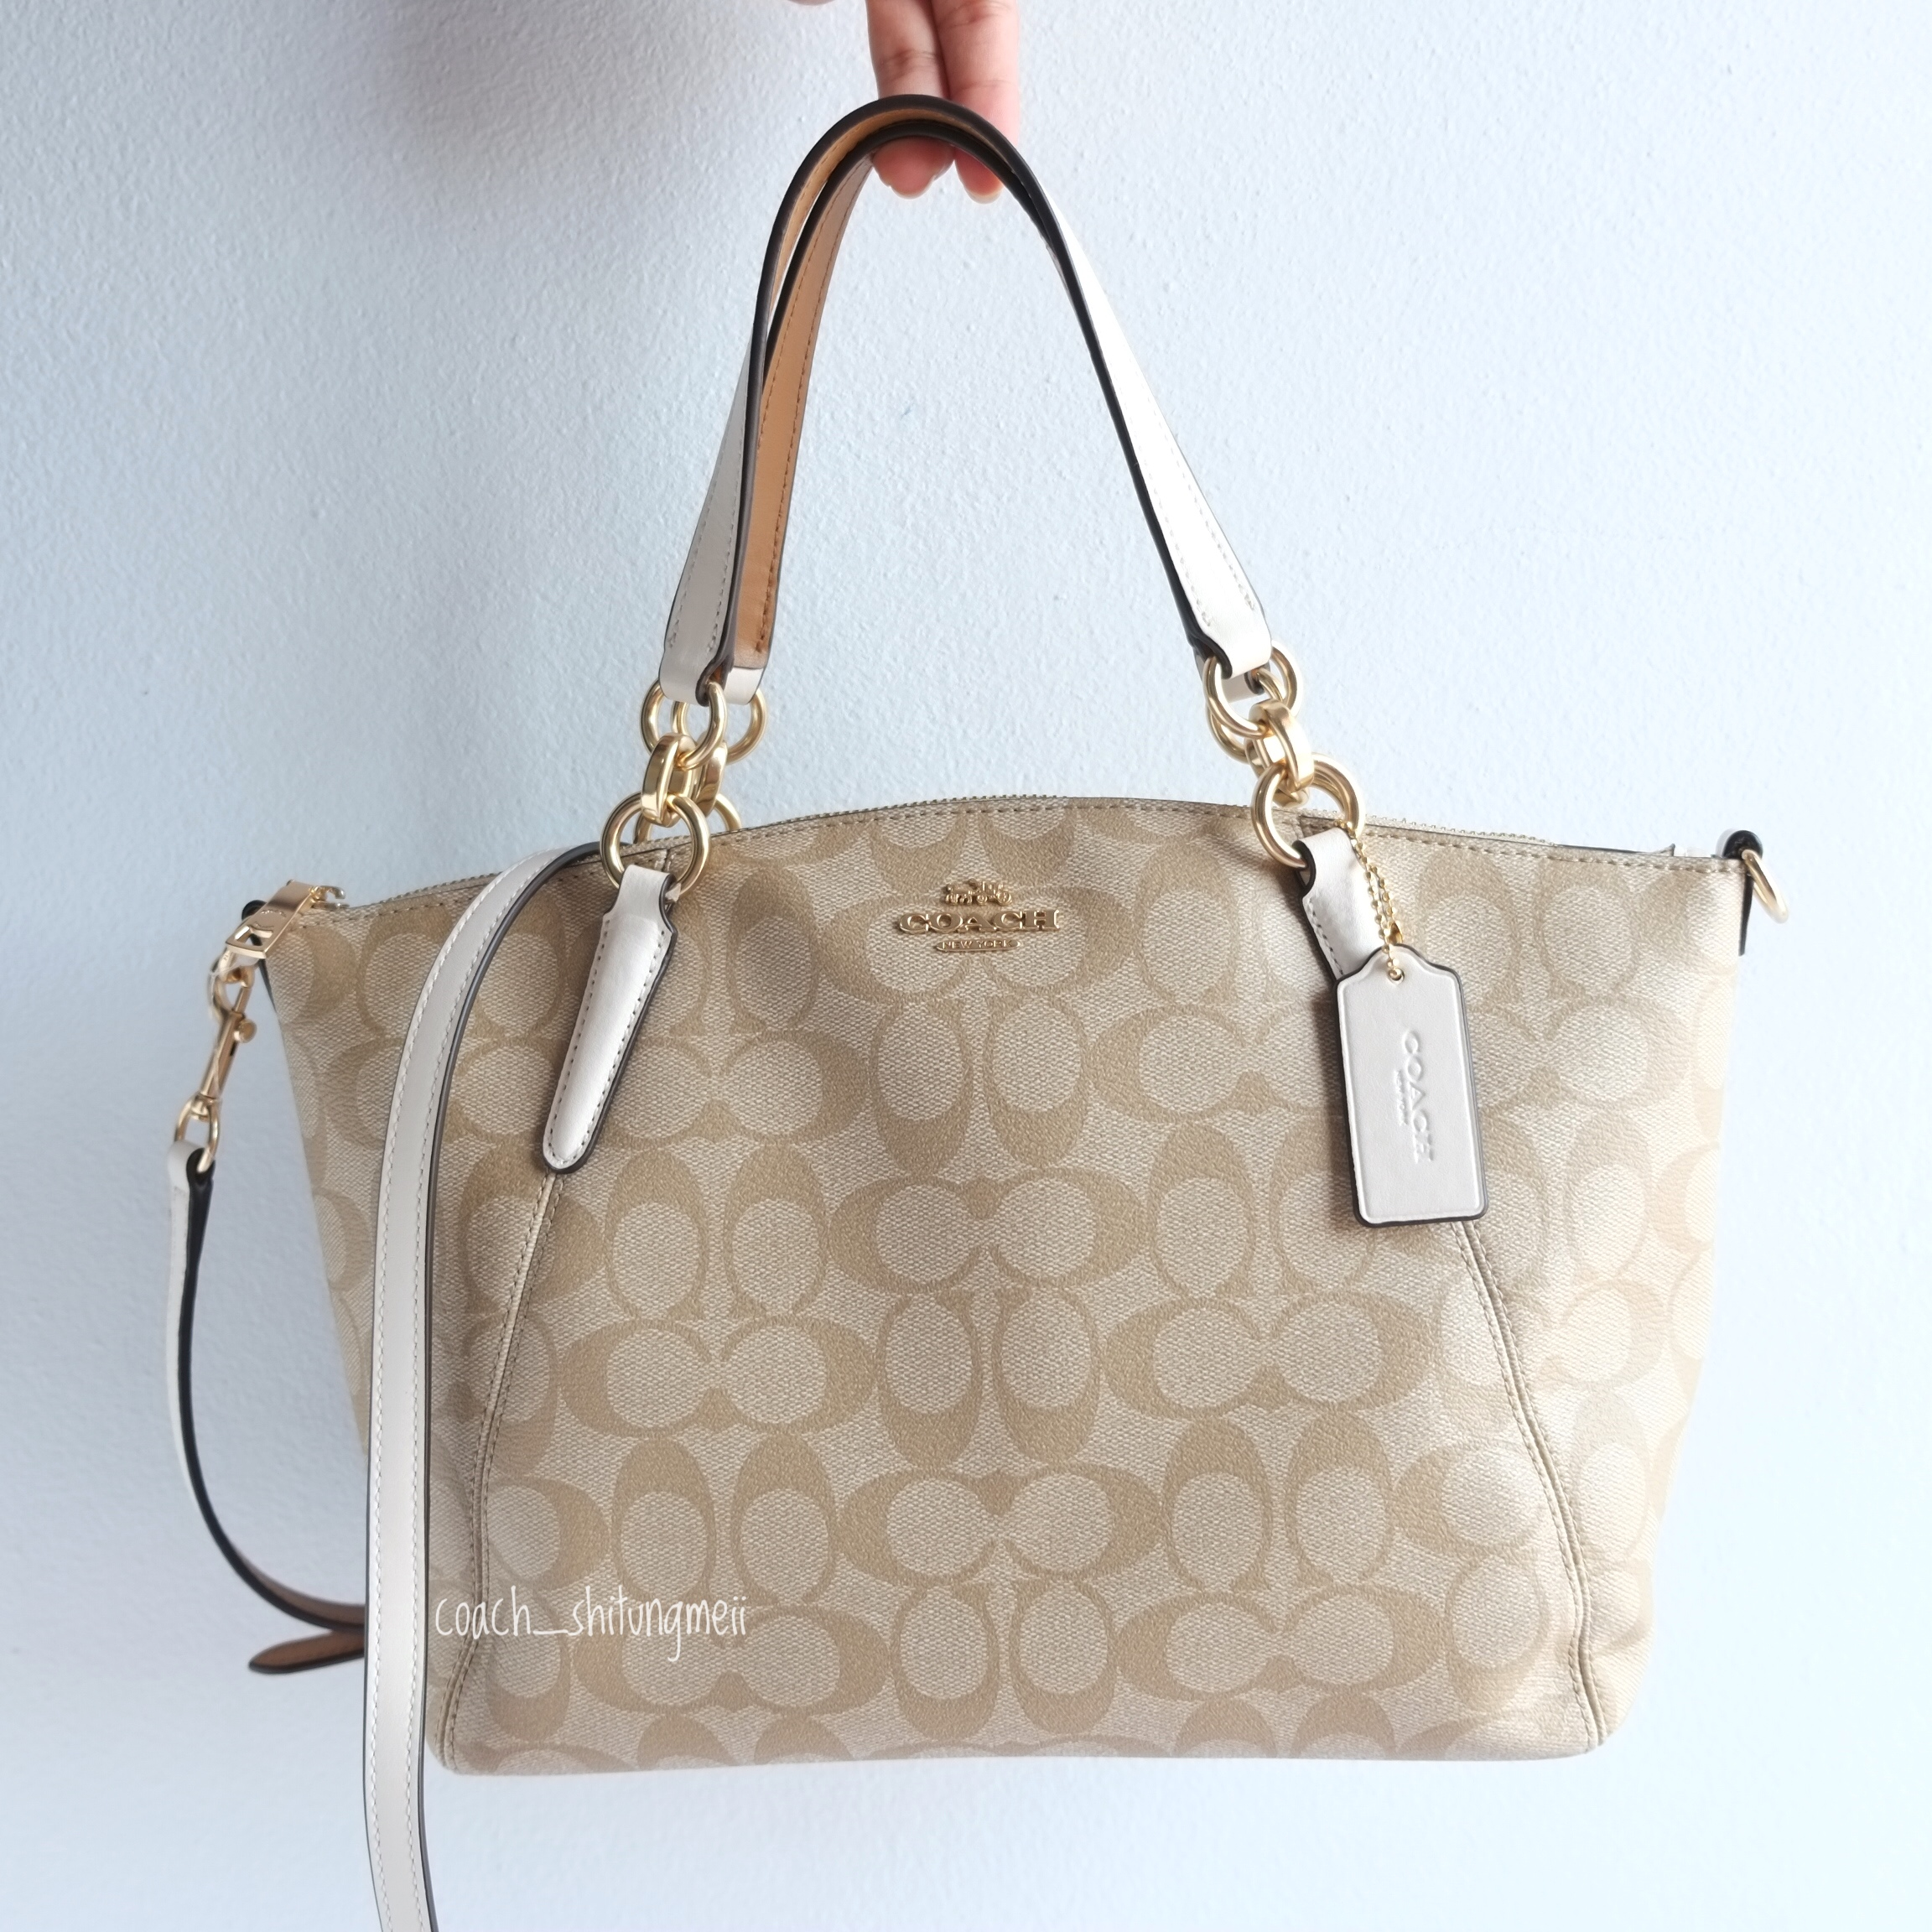 22fc58c71 พร้อมส่ง COACH f28989 SMALL KELSEY SATCHEL IN SIGNATURE CANVAS - CHALK